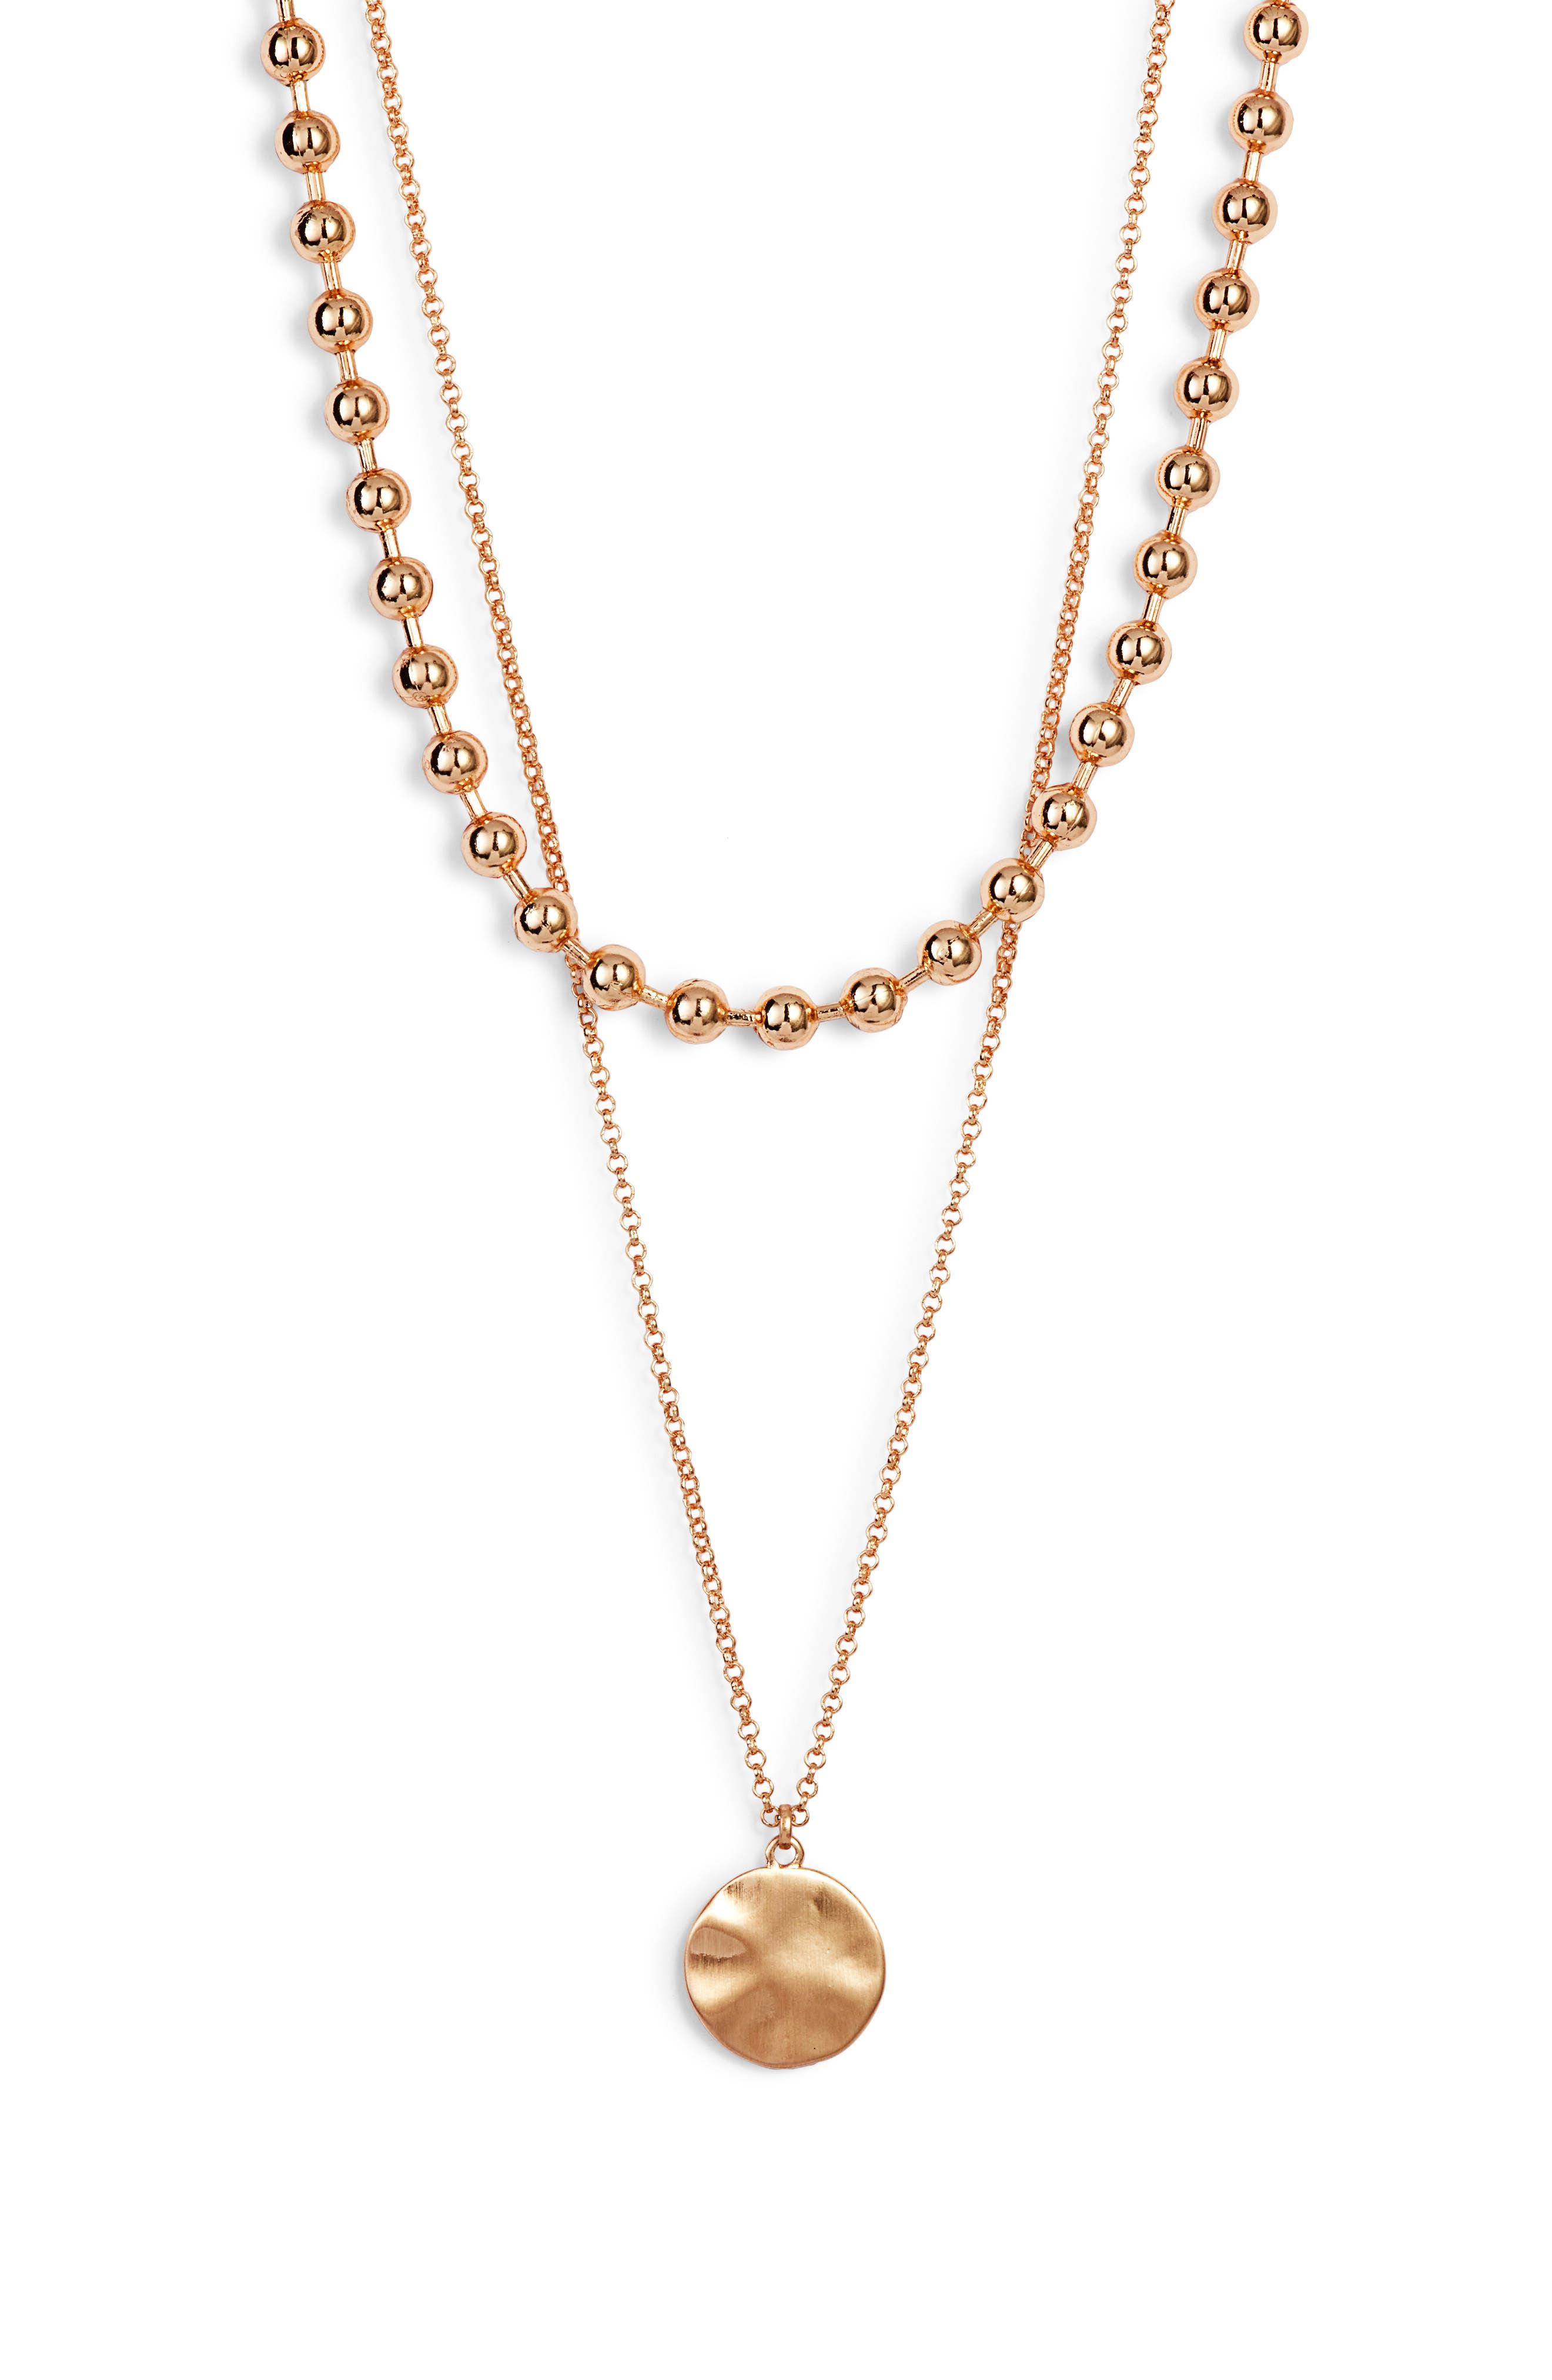 2-in-1 Ball Chain Disc Necklace,                             Main thumbnail 1, color,                             710